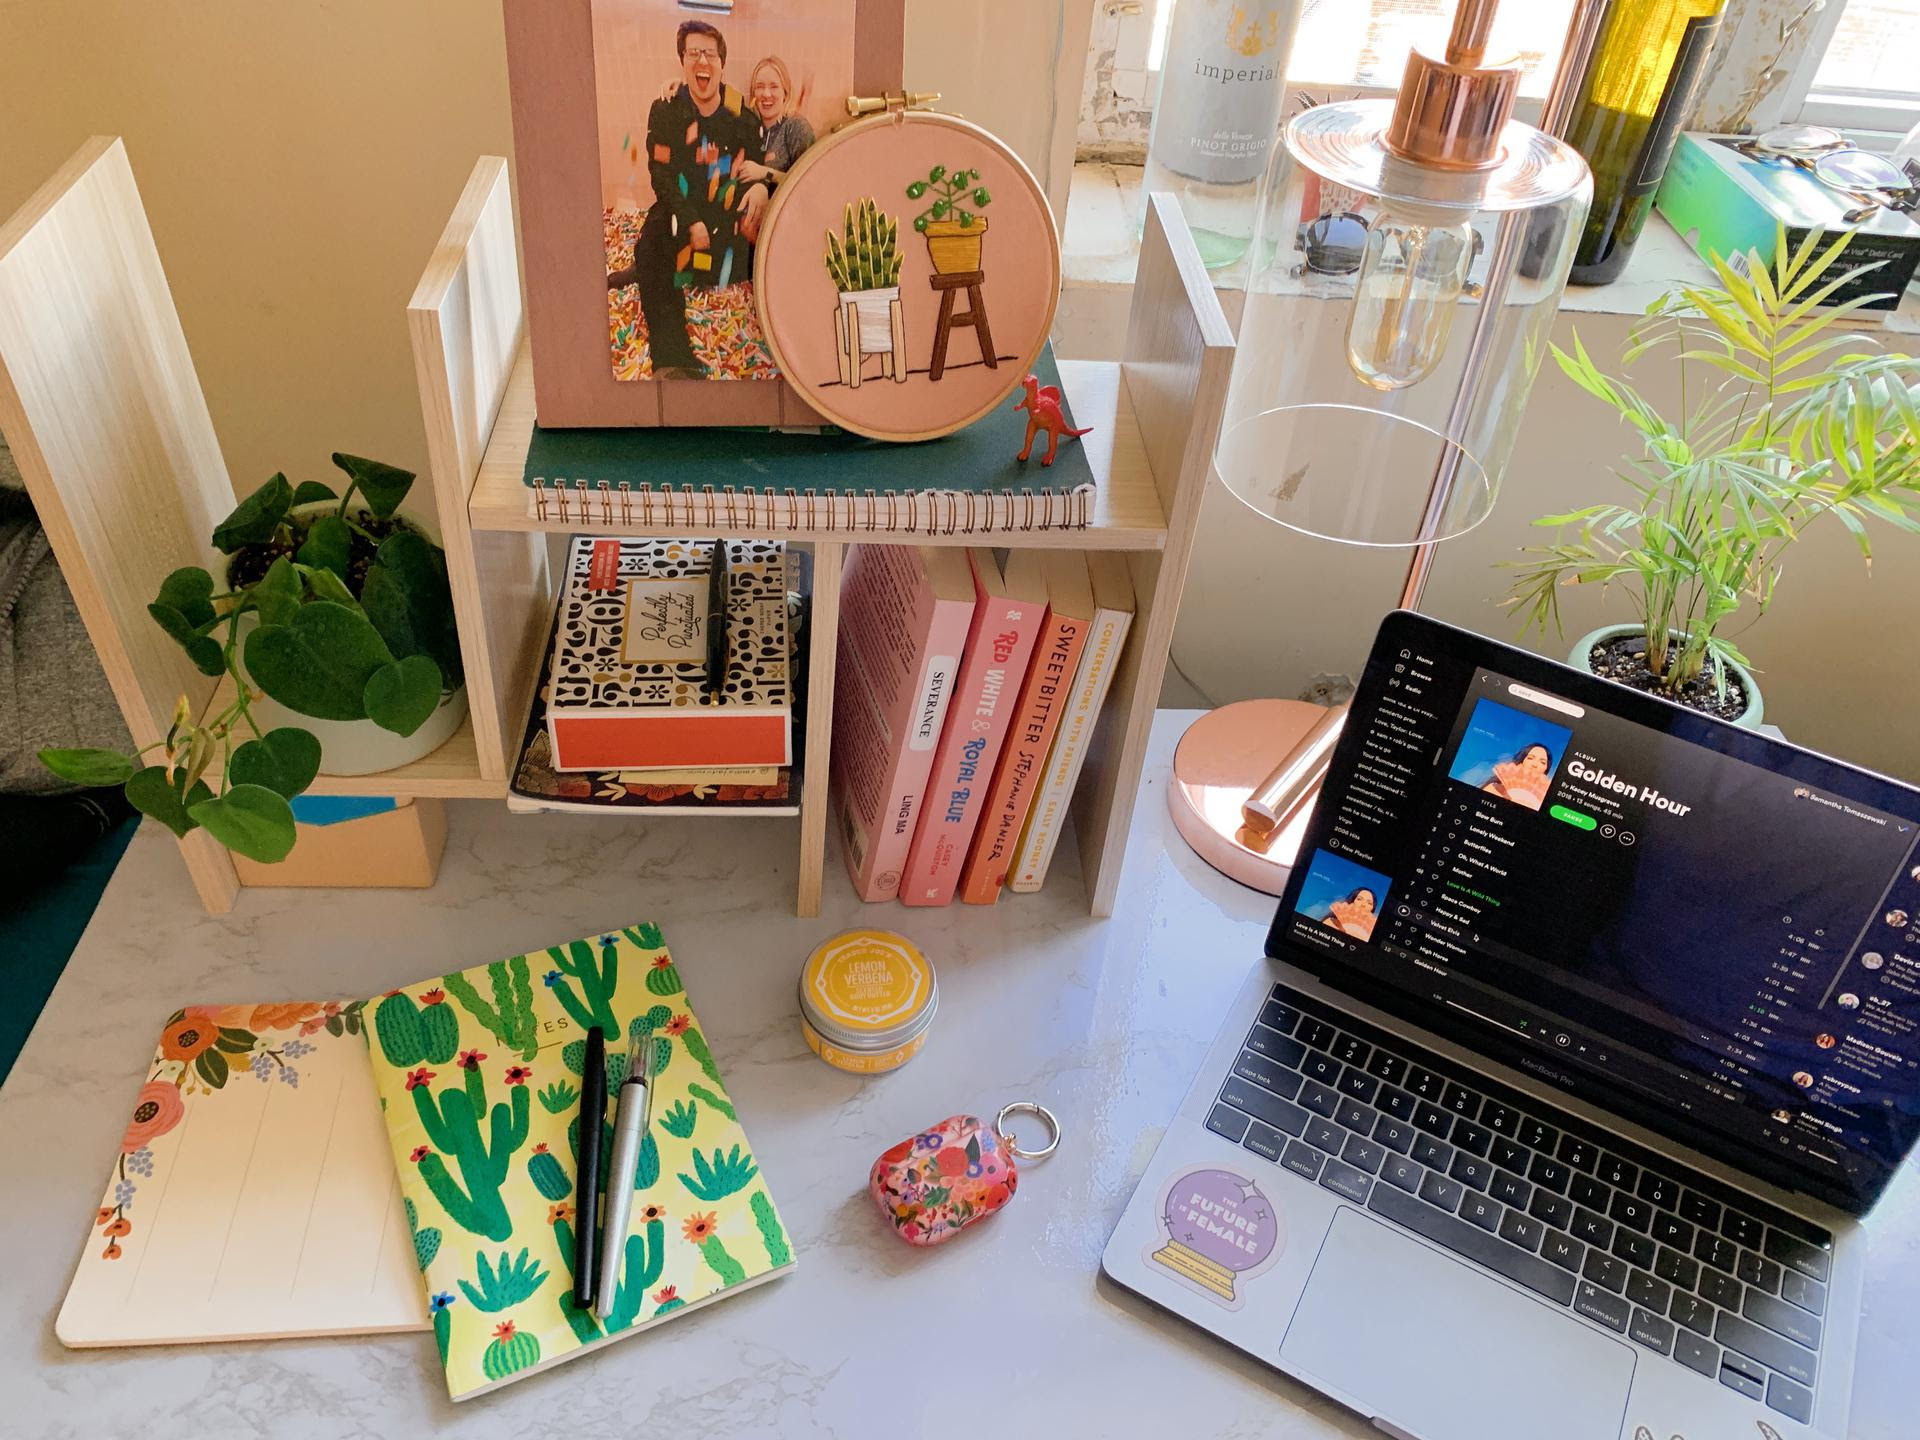 buzzfeeder's desk with a spread of colorful accessories and a laptop